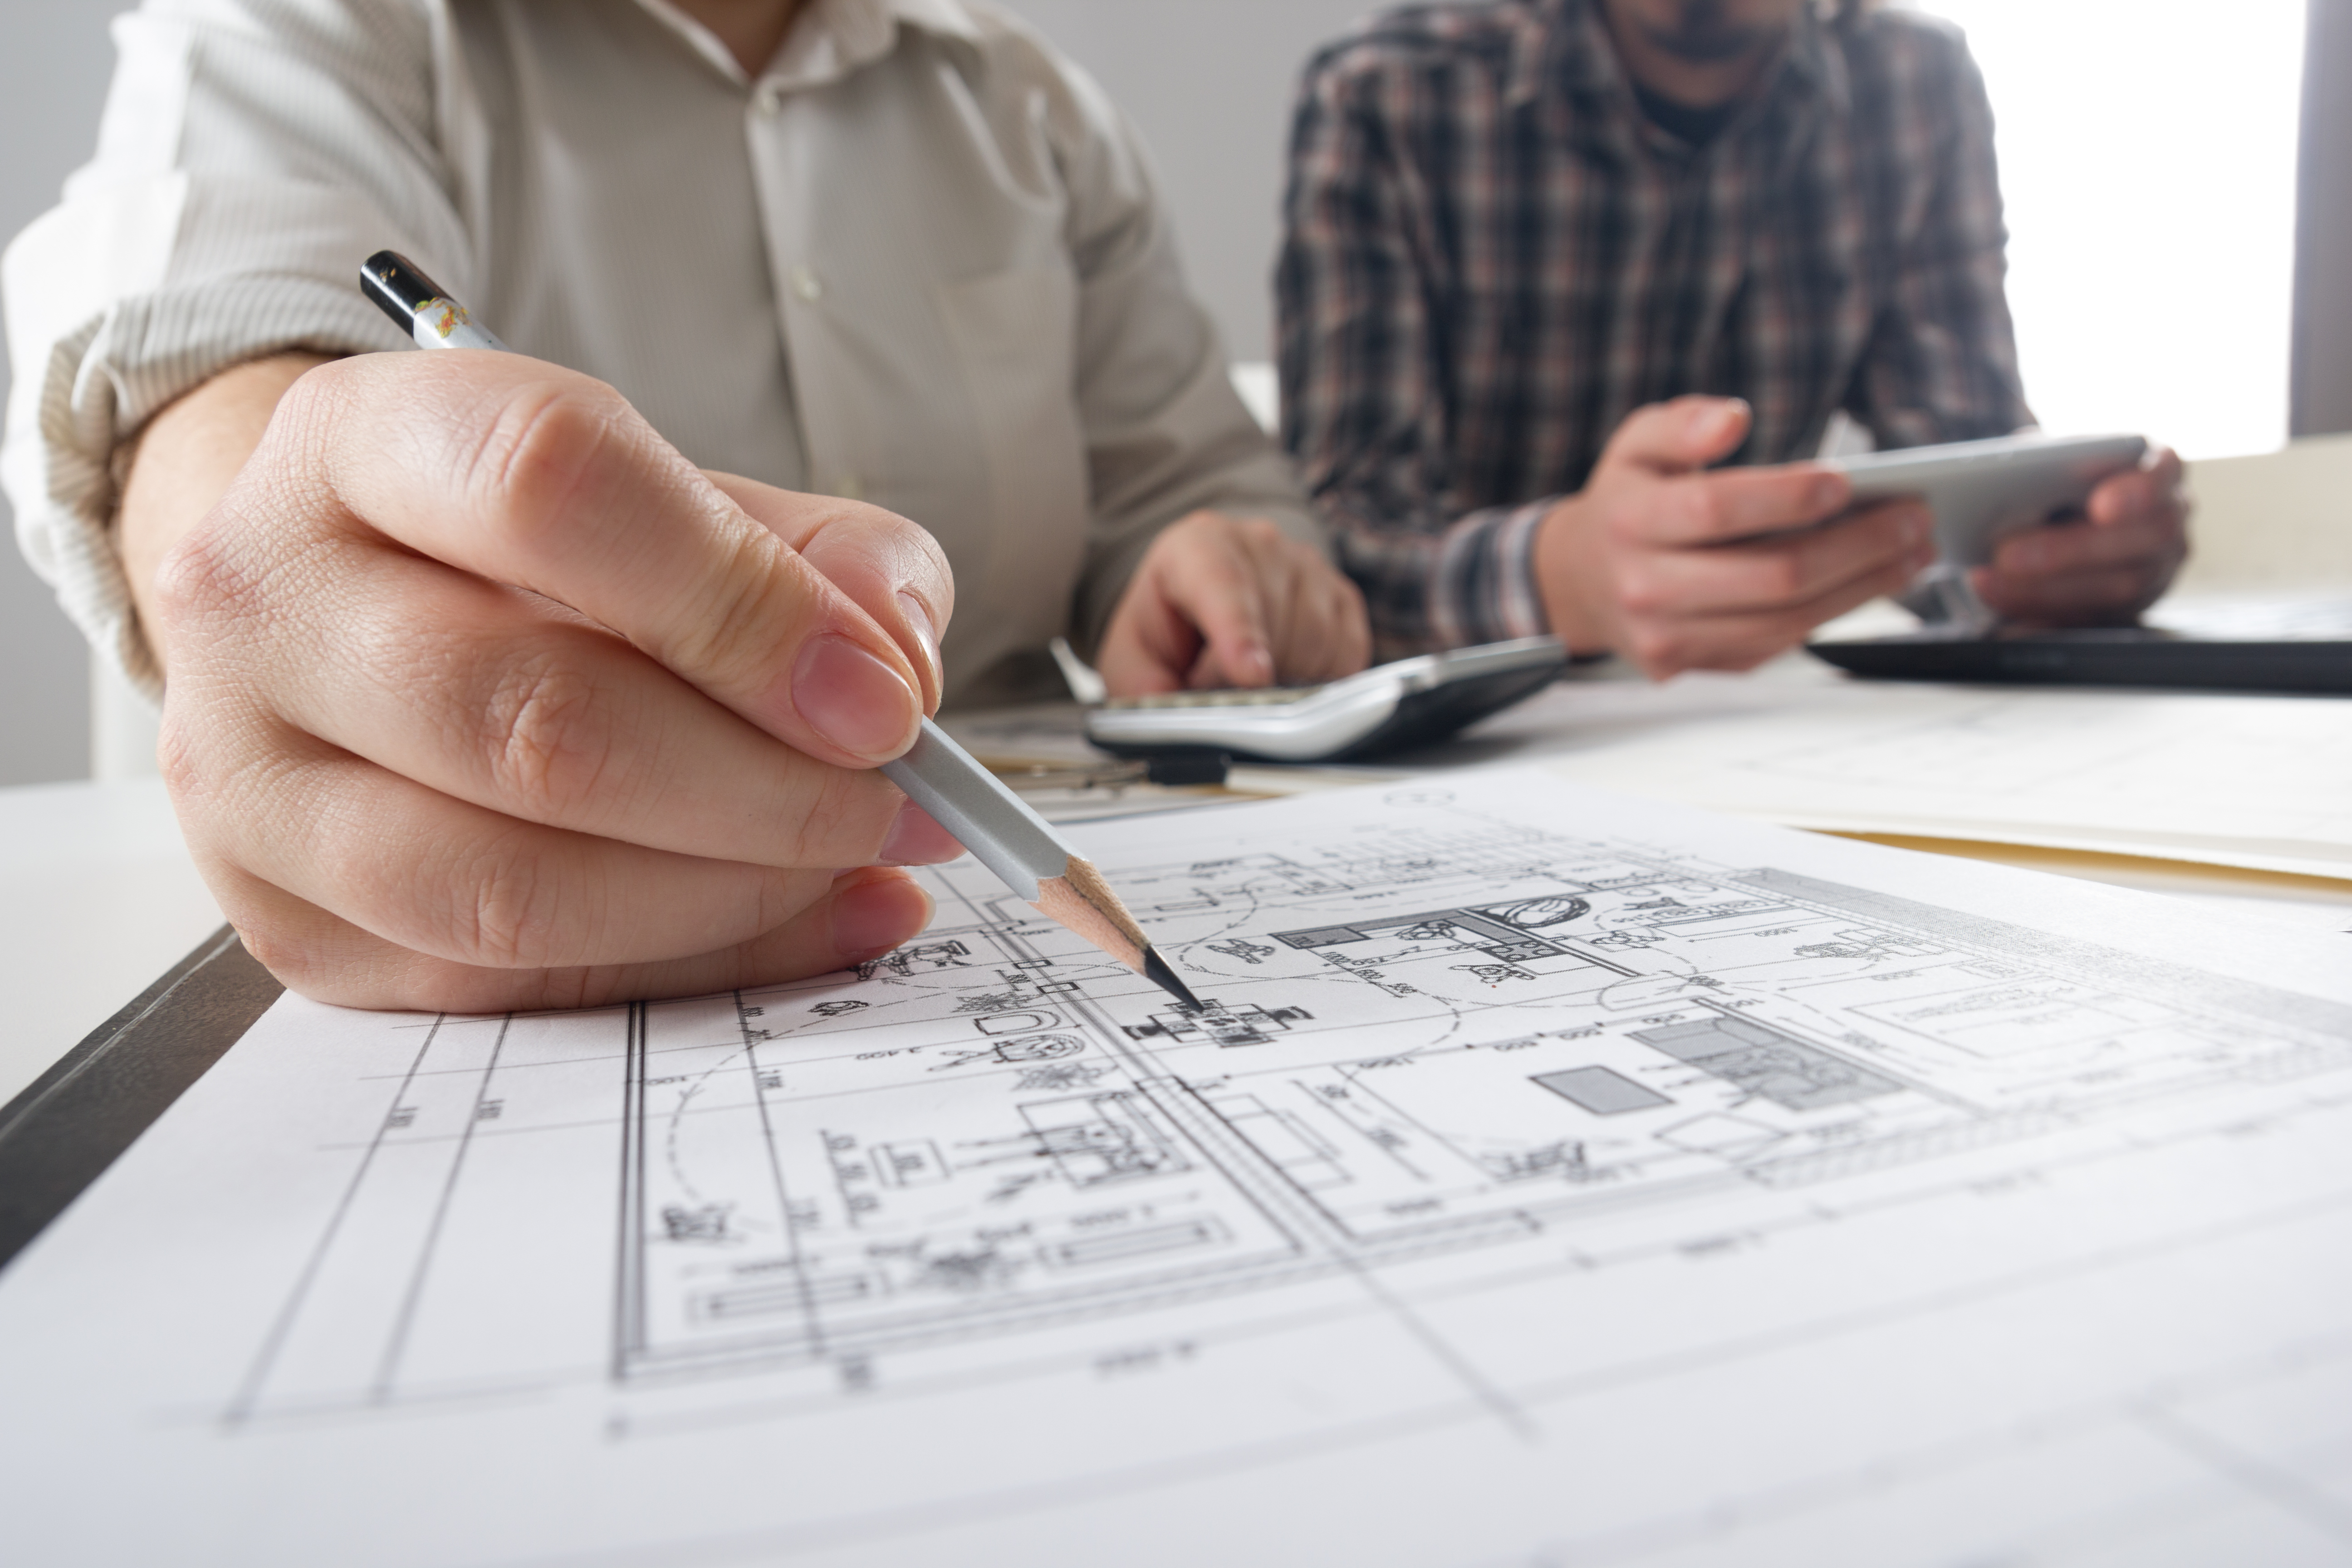 Two floor plan designers draft custom home plans for a client